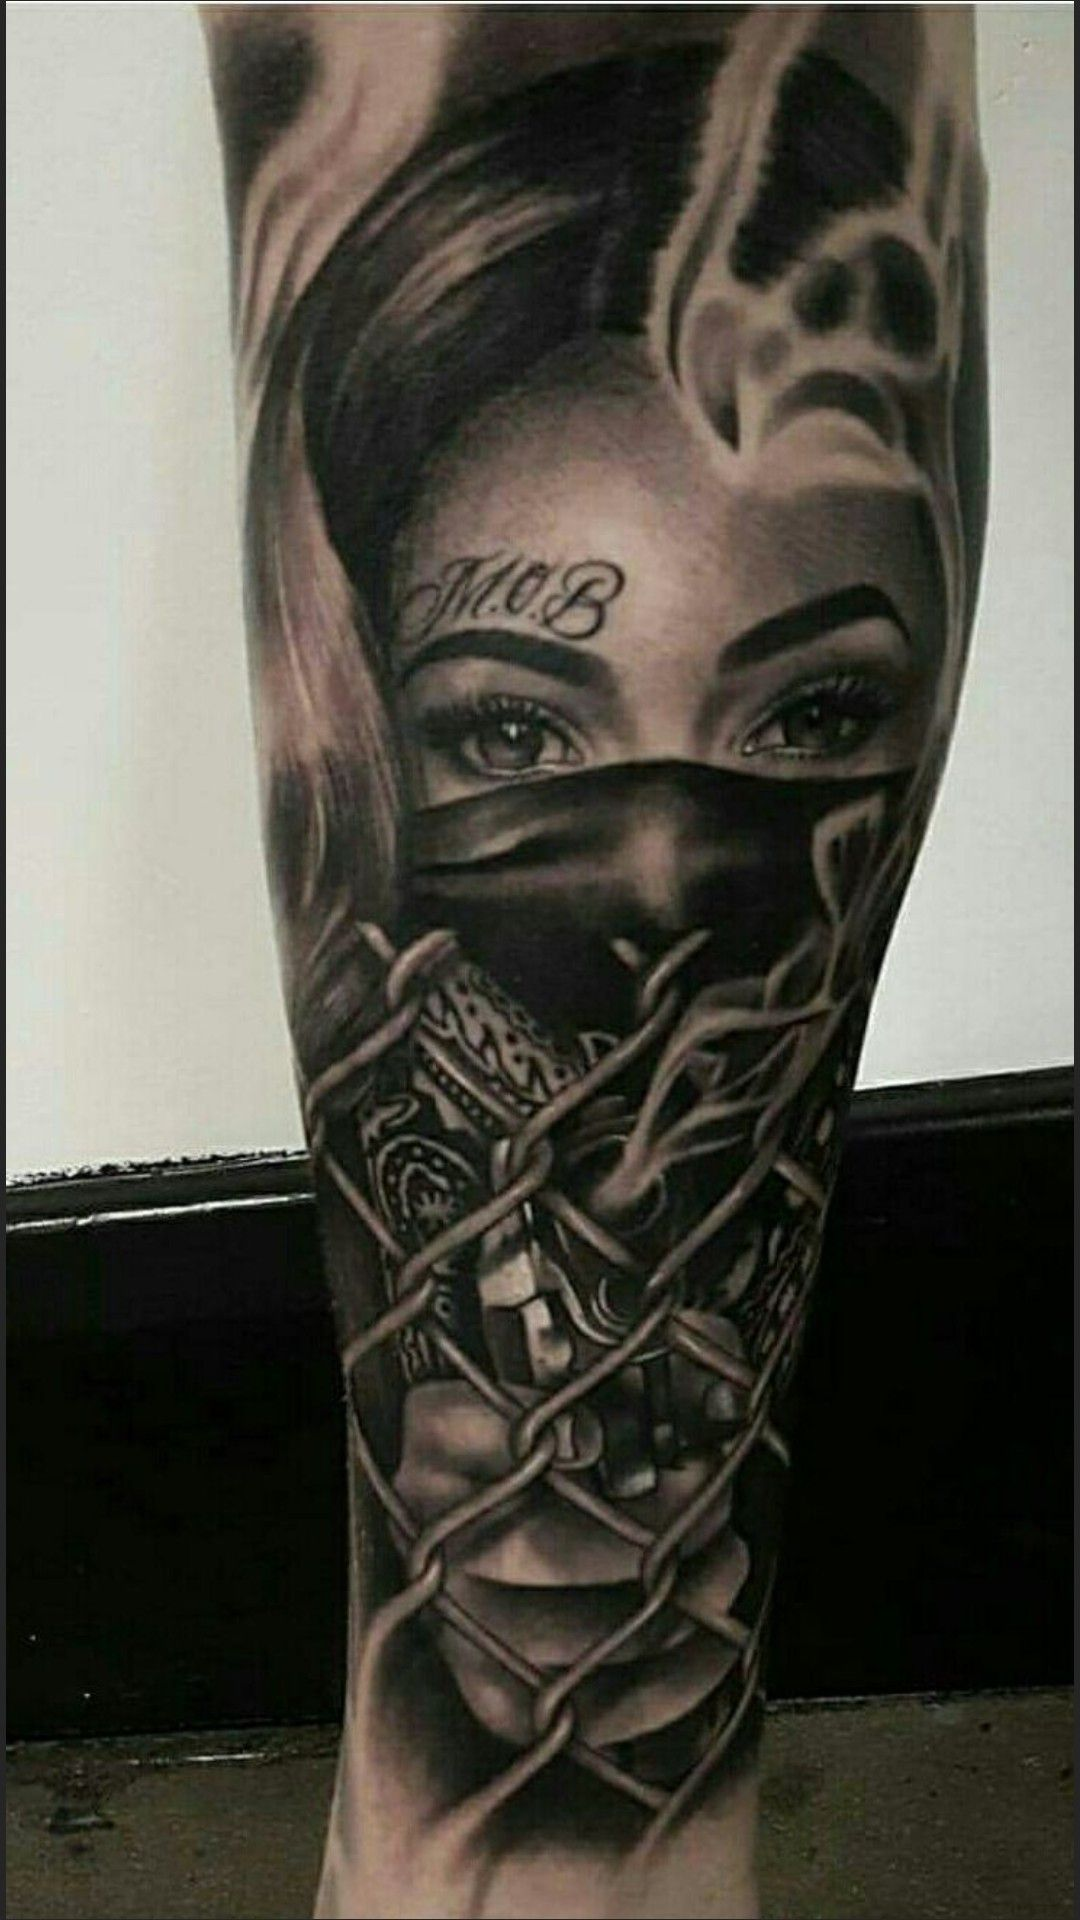 Face Tattoos Forearm Sleeve Pics Tattoo Designs Tatoos Chicano Gangsta Art